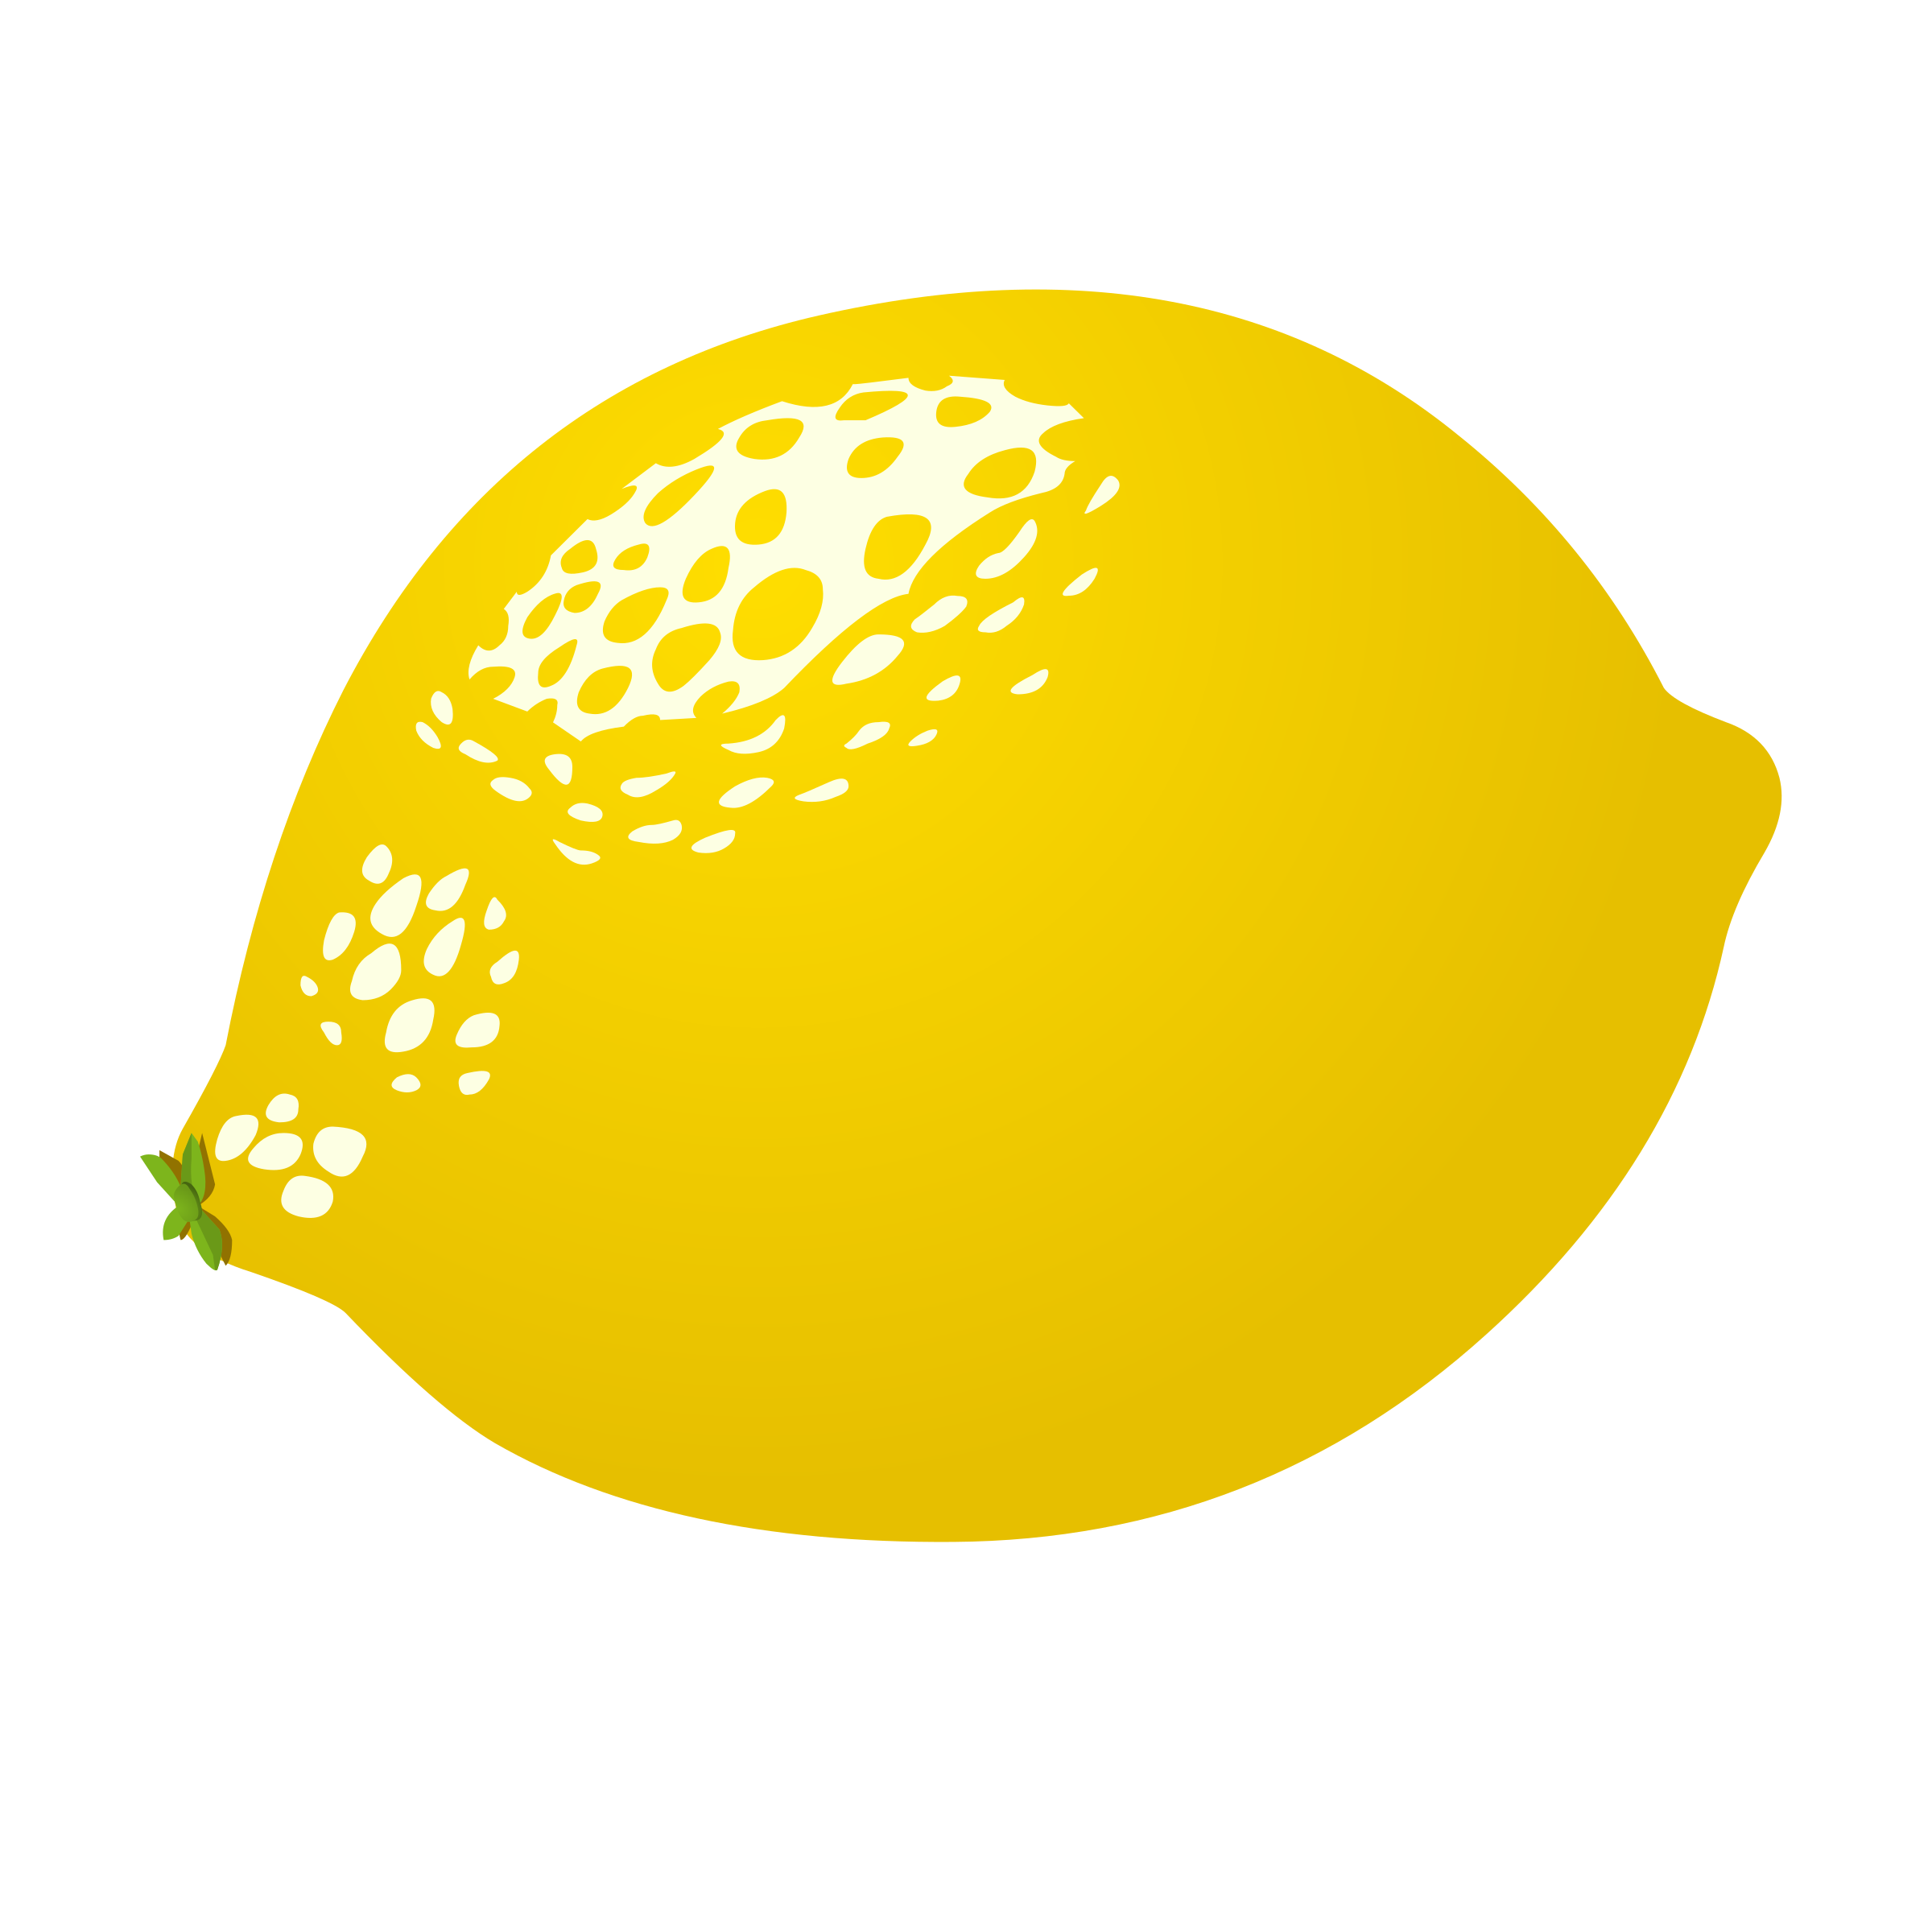 picture black and white Lemons clipart yellow. Pretty lemon food cilpart.